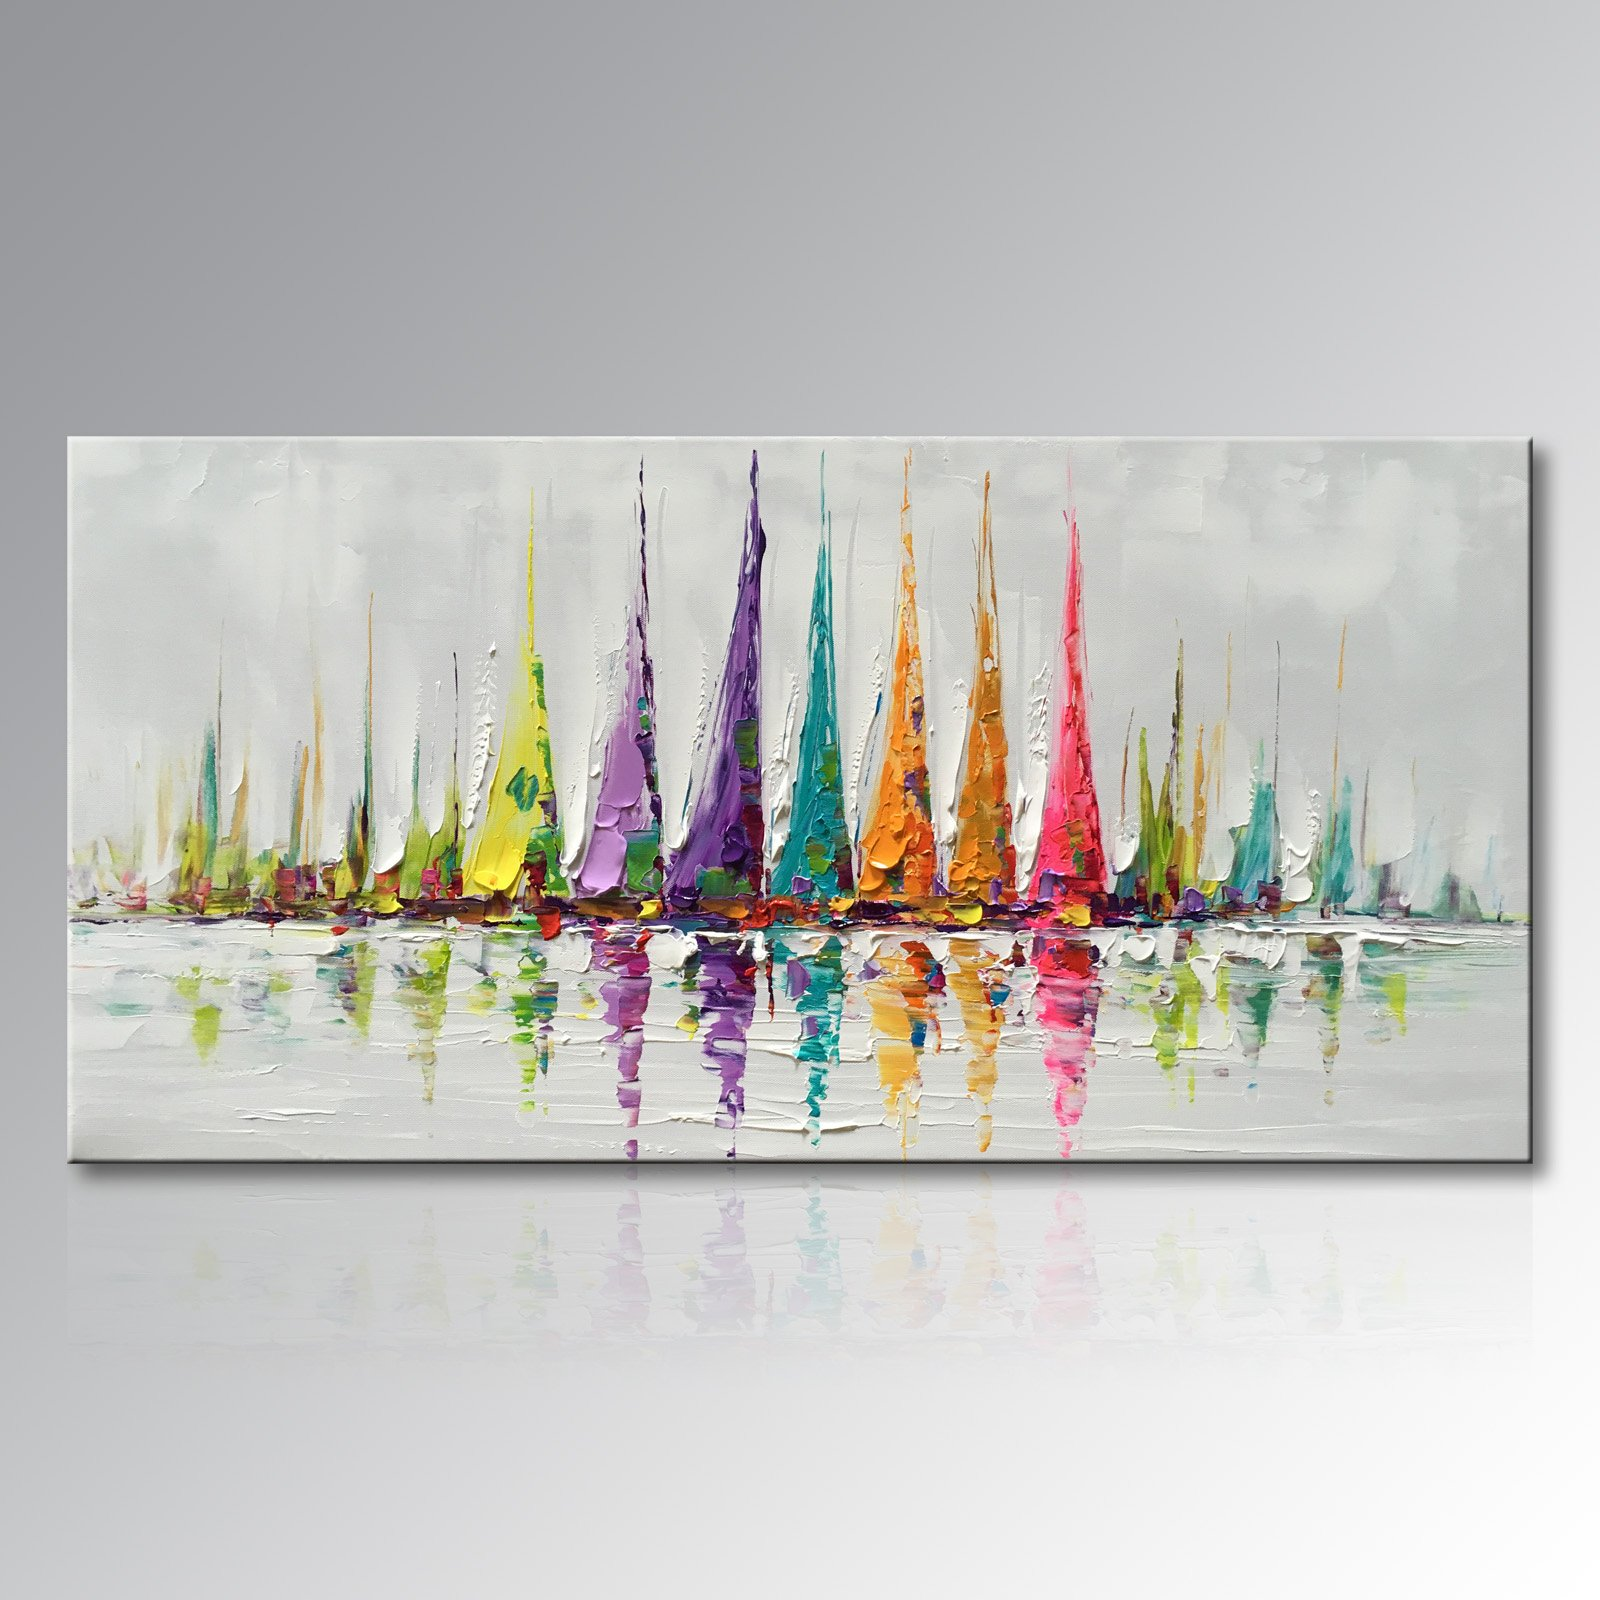 Winpeak Art Hand Painted Large Canvas Wall Art Colorful Sailboat Abstract Oil Painting Modern Decorative Artwork Contemporary Impressionist Artwork Framed Ready to Hang (56''W x 28''H) by Winpeak Art